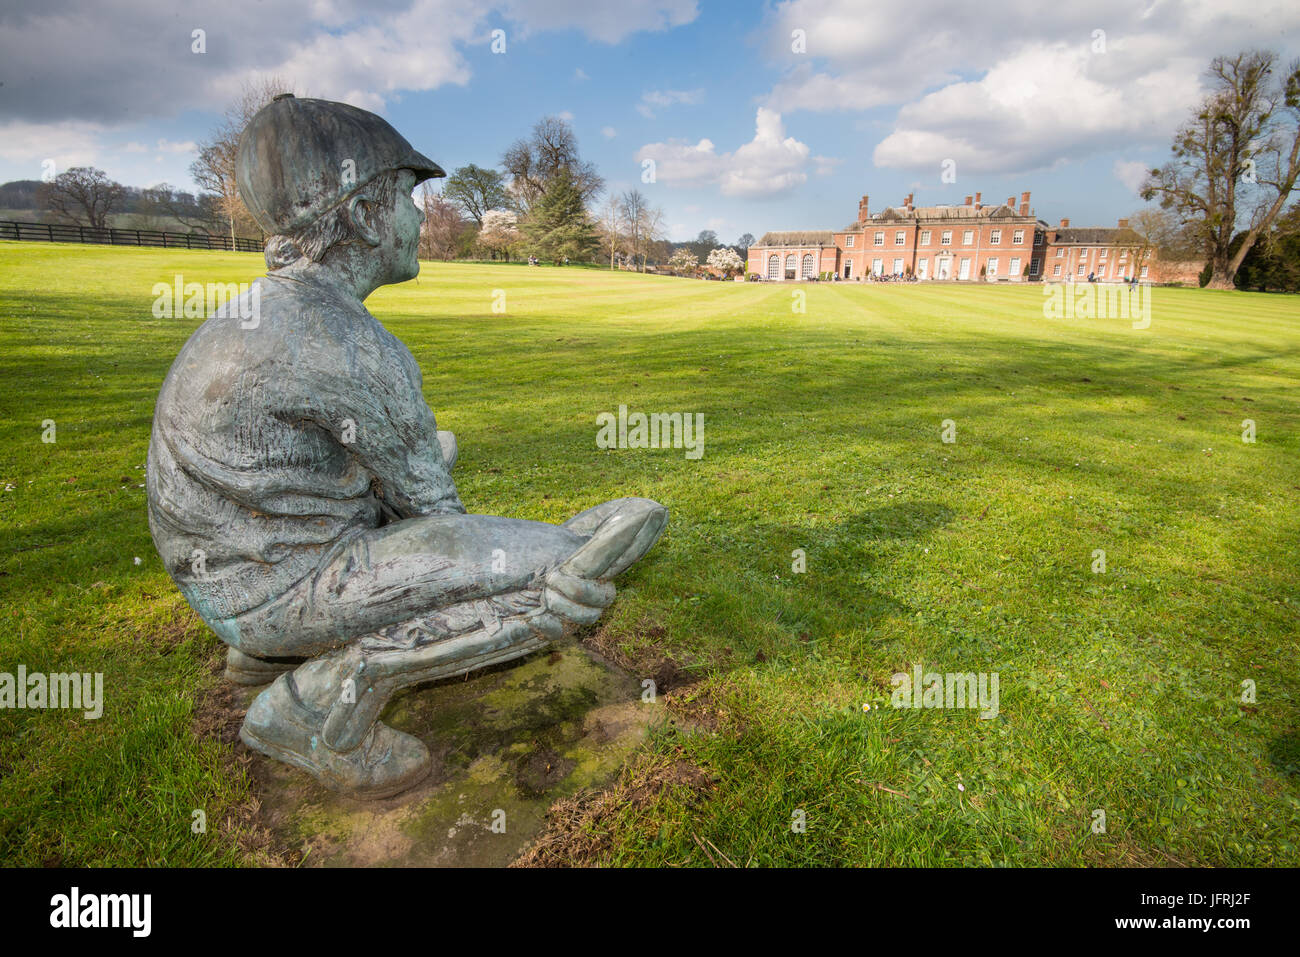 Wicket Keeper statue - Stock Image